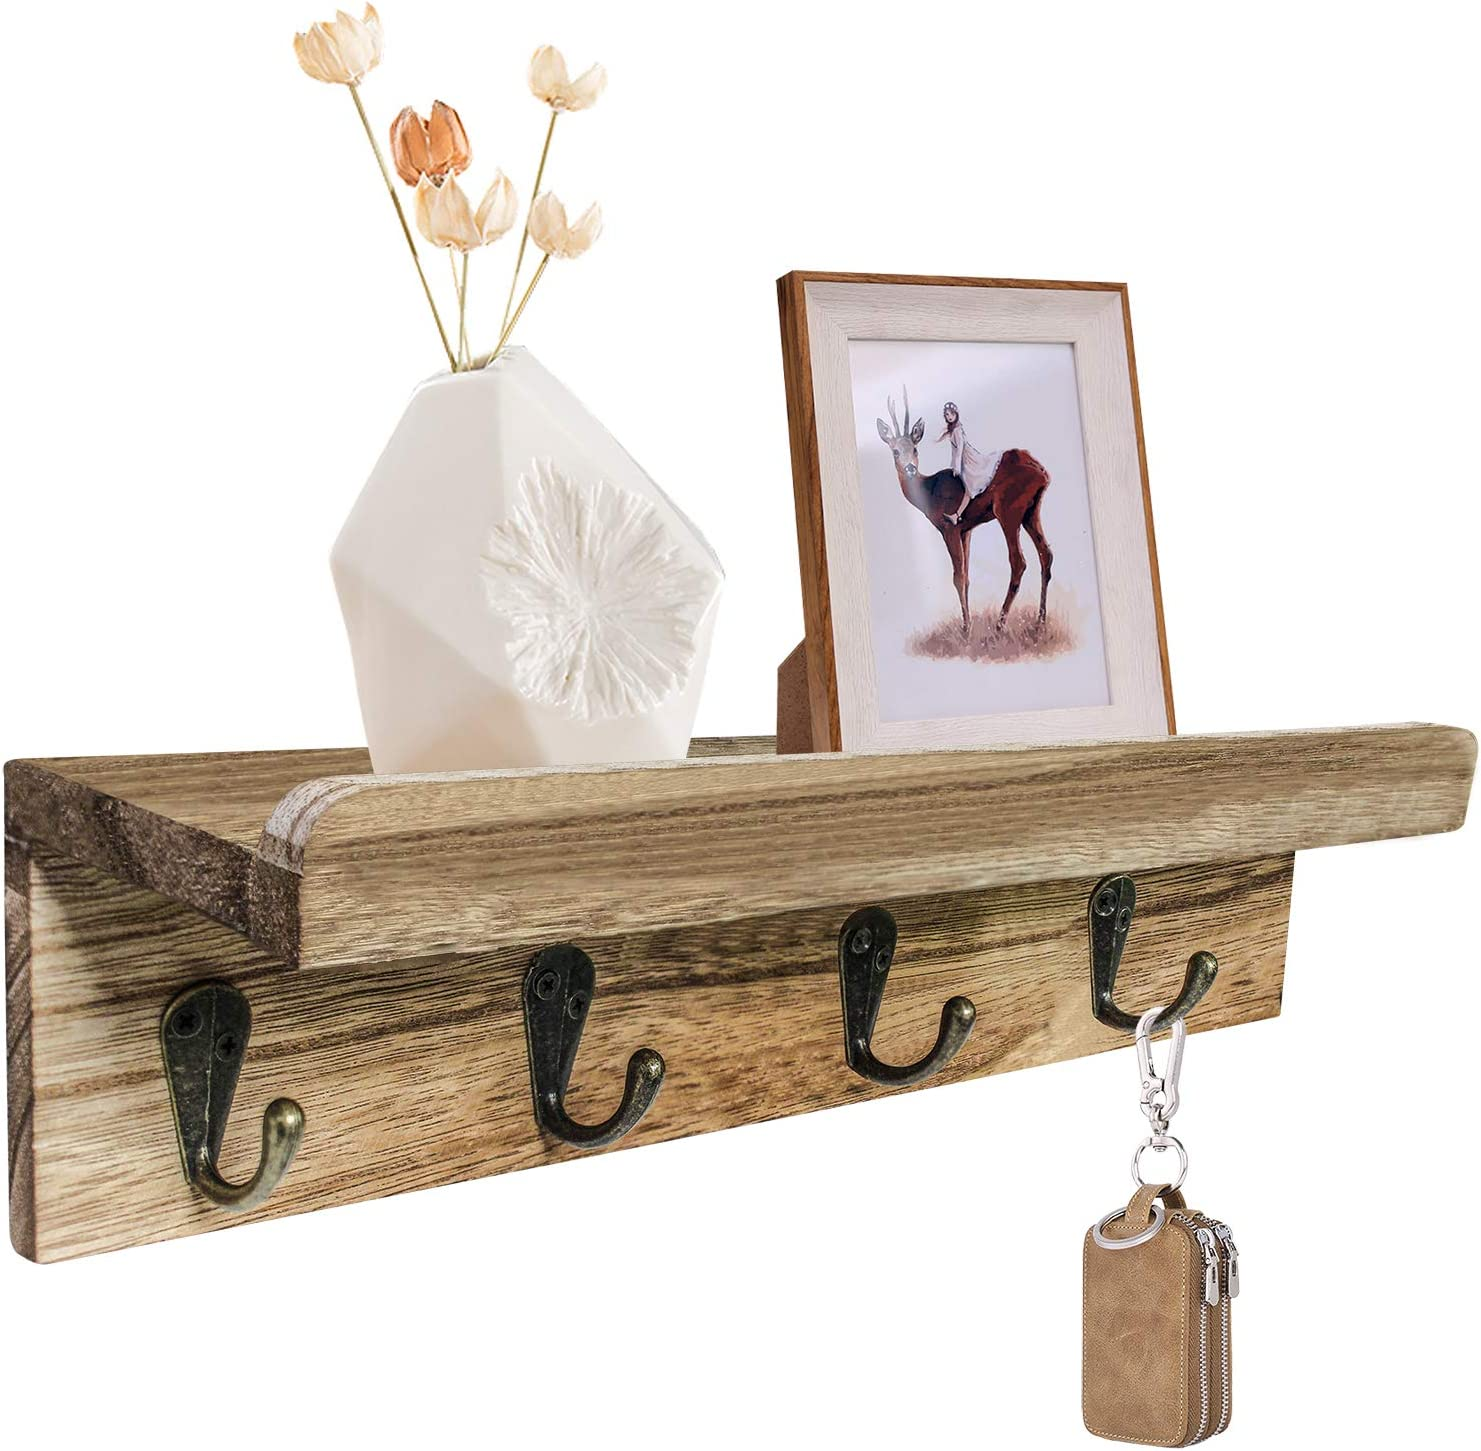 Rustic Entryway Wood Shelves with Hooks, Key Hooks for Wall, Home Decor Wall Mounted Key Rack with Shelf, Small Key Shelf Storage and Organizer for Office, Entryway, Bathroom, Kitchen